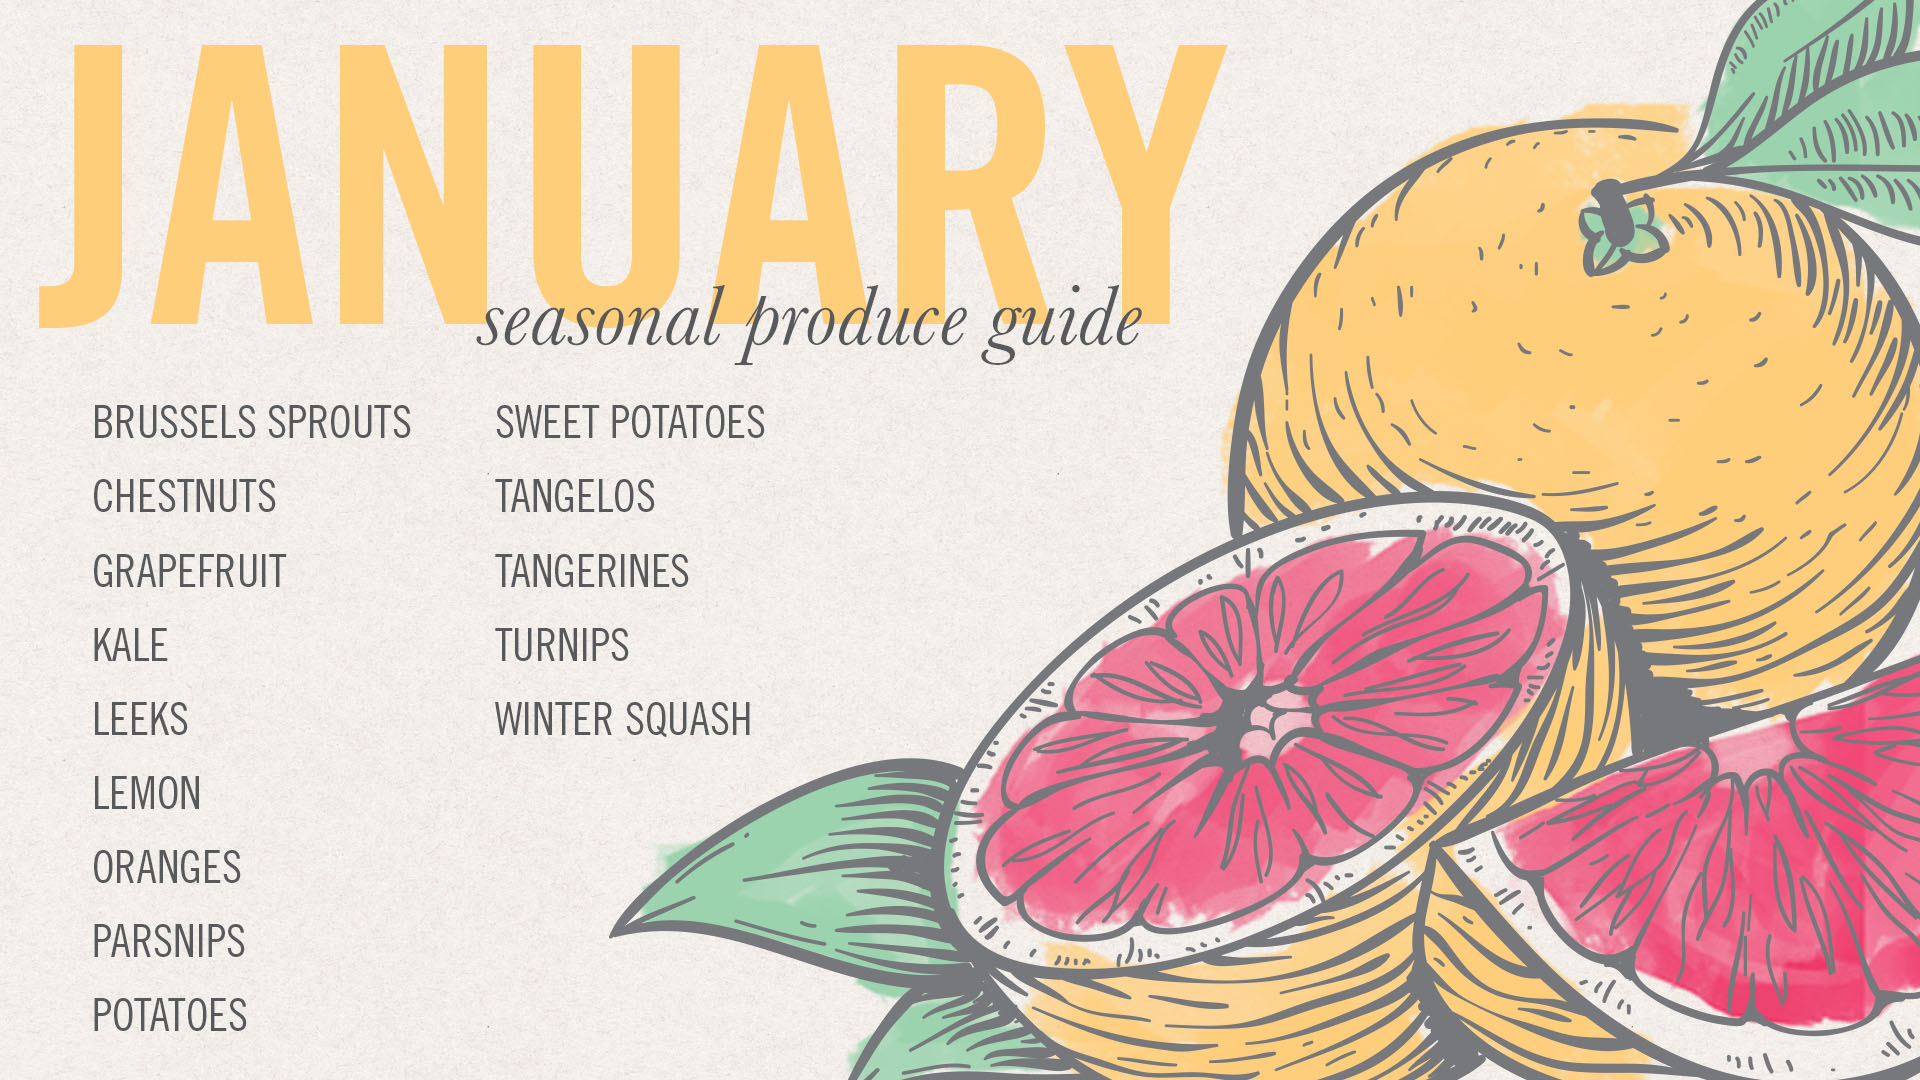 January Seasonal Produce Guide • theVintageMixer.com #eatseasonal